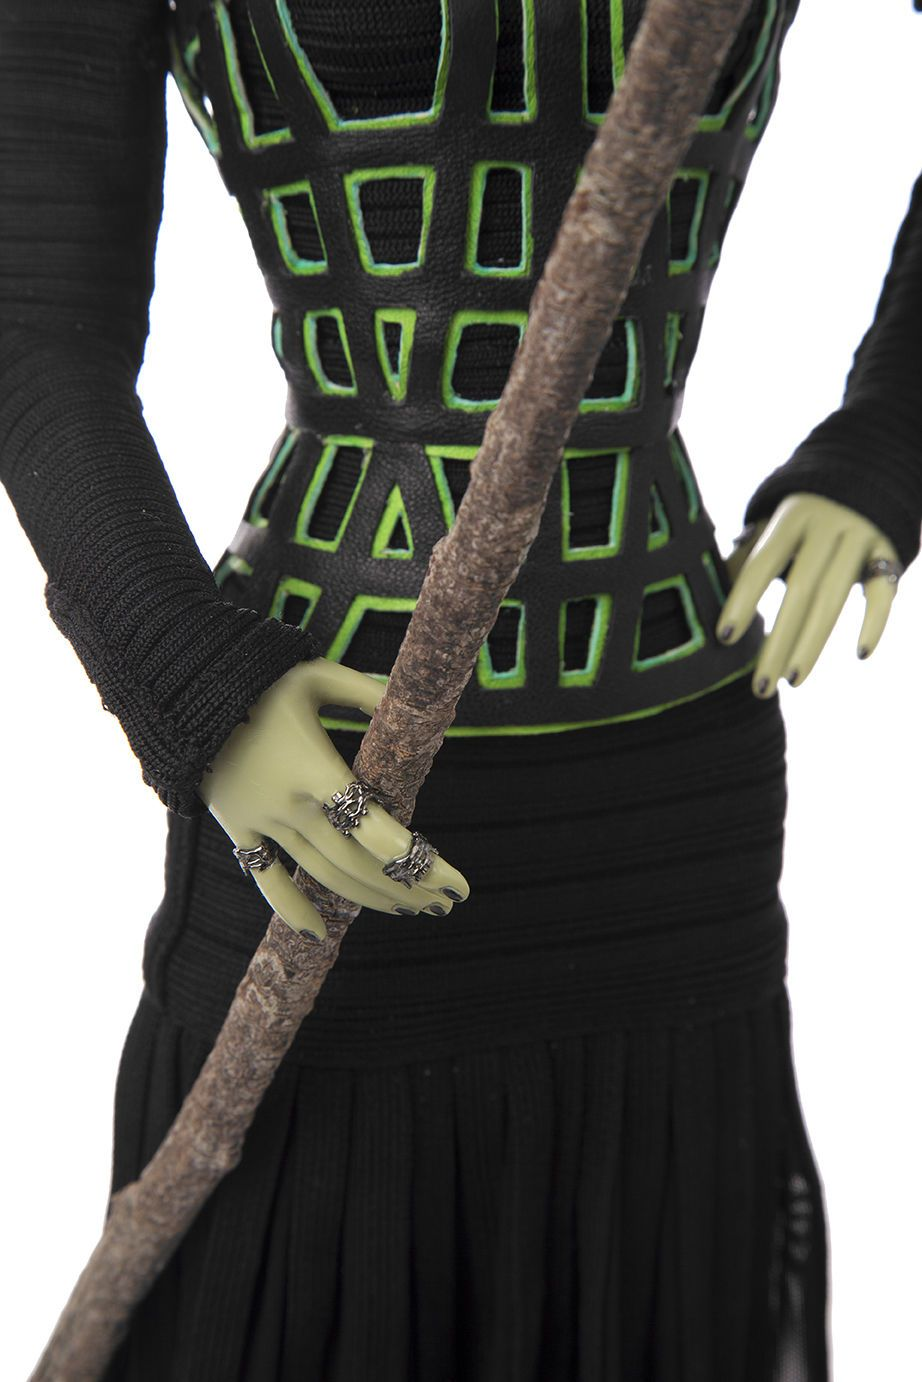 The Wizard of Oz The Wicked Witch of the West Tonner Doll by Hervé Léger  #TheWickedWitch by #HerveLeger for #WizardOfOz75 collection #TNPLH #HabitatForHumanity // #nyfw New York Fashion Week 2014 charity auction / designer / collectible / Tonner Doll / green / high pony tail / mask / feather broom / black dress / green corset / long sleeves / turtle-neck / midi rings